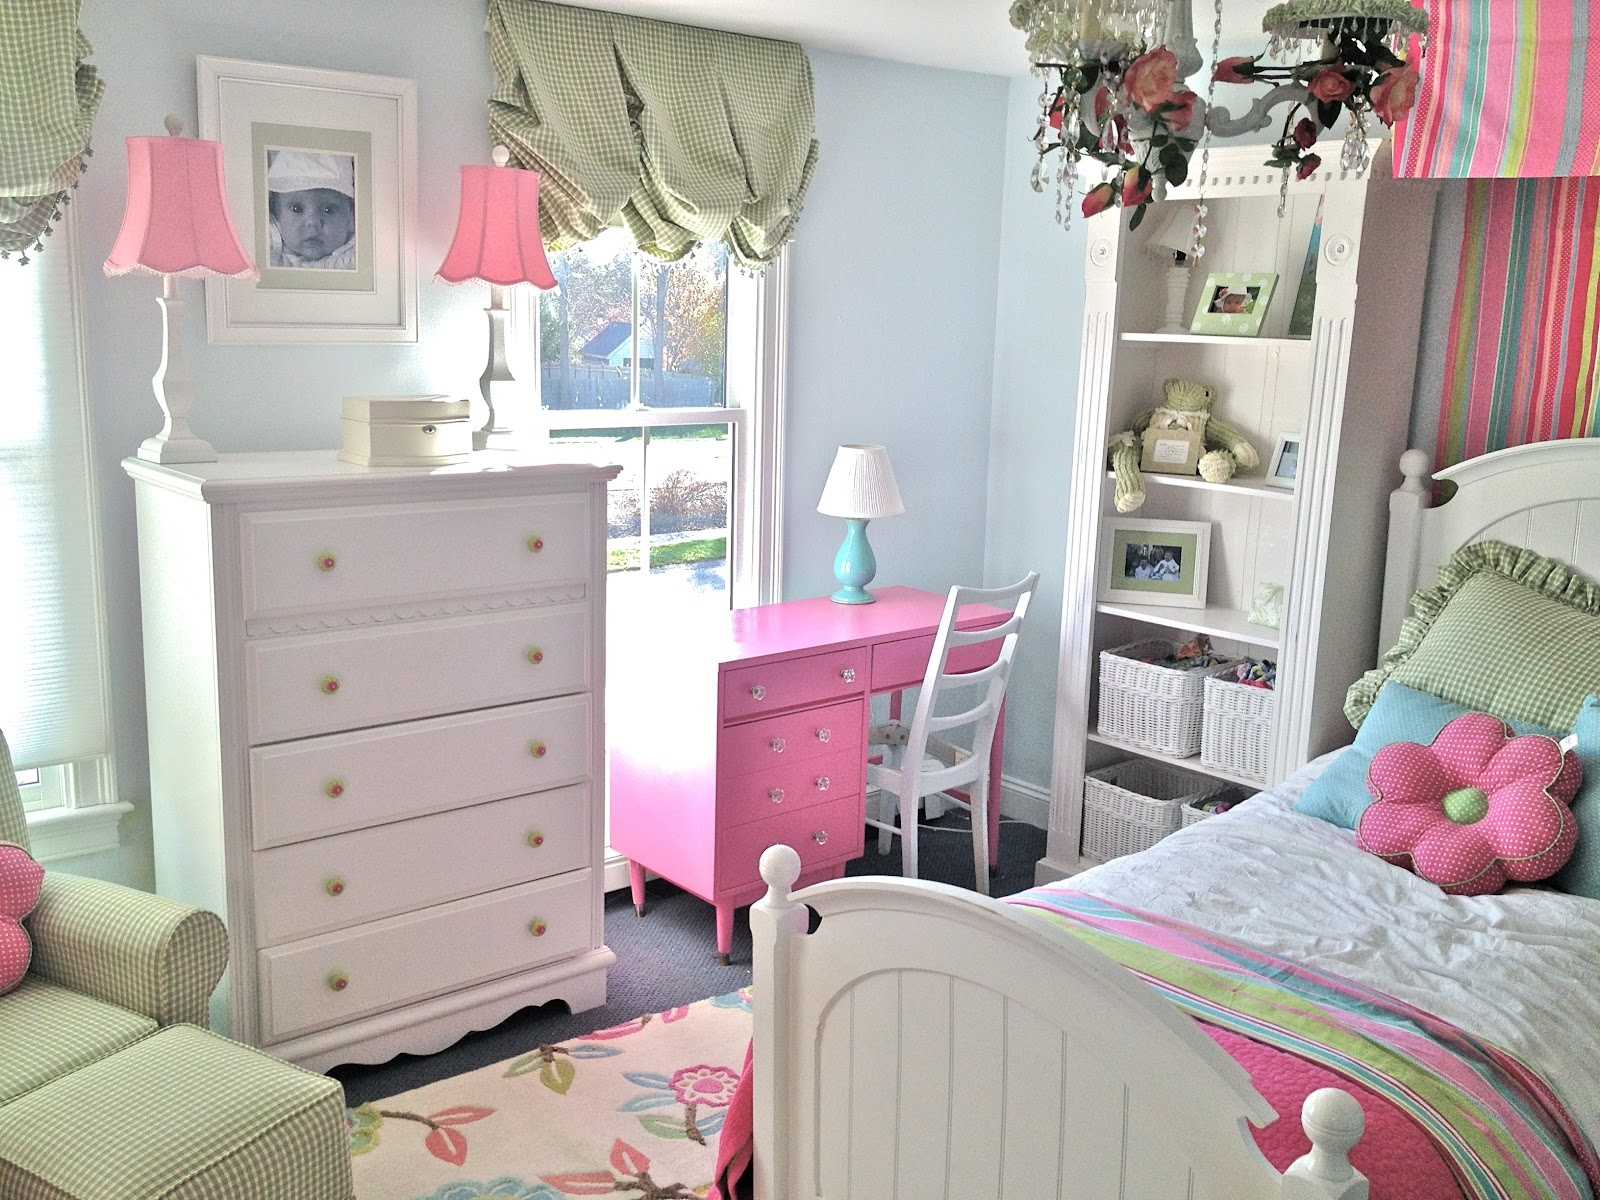 Light Blue Painted Wall White Vintage Drawer Pink Study Table Storage